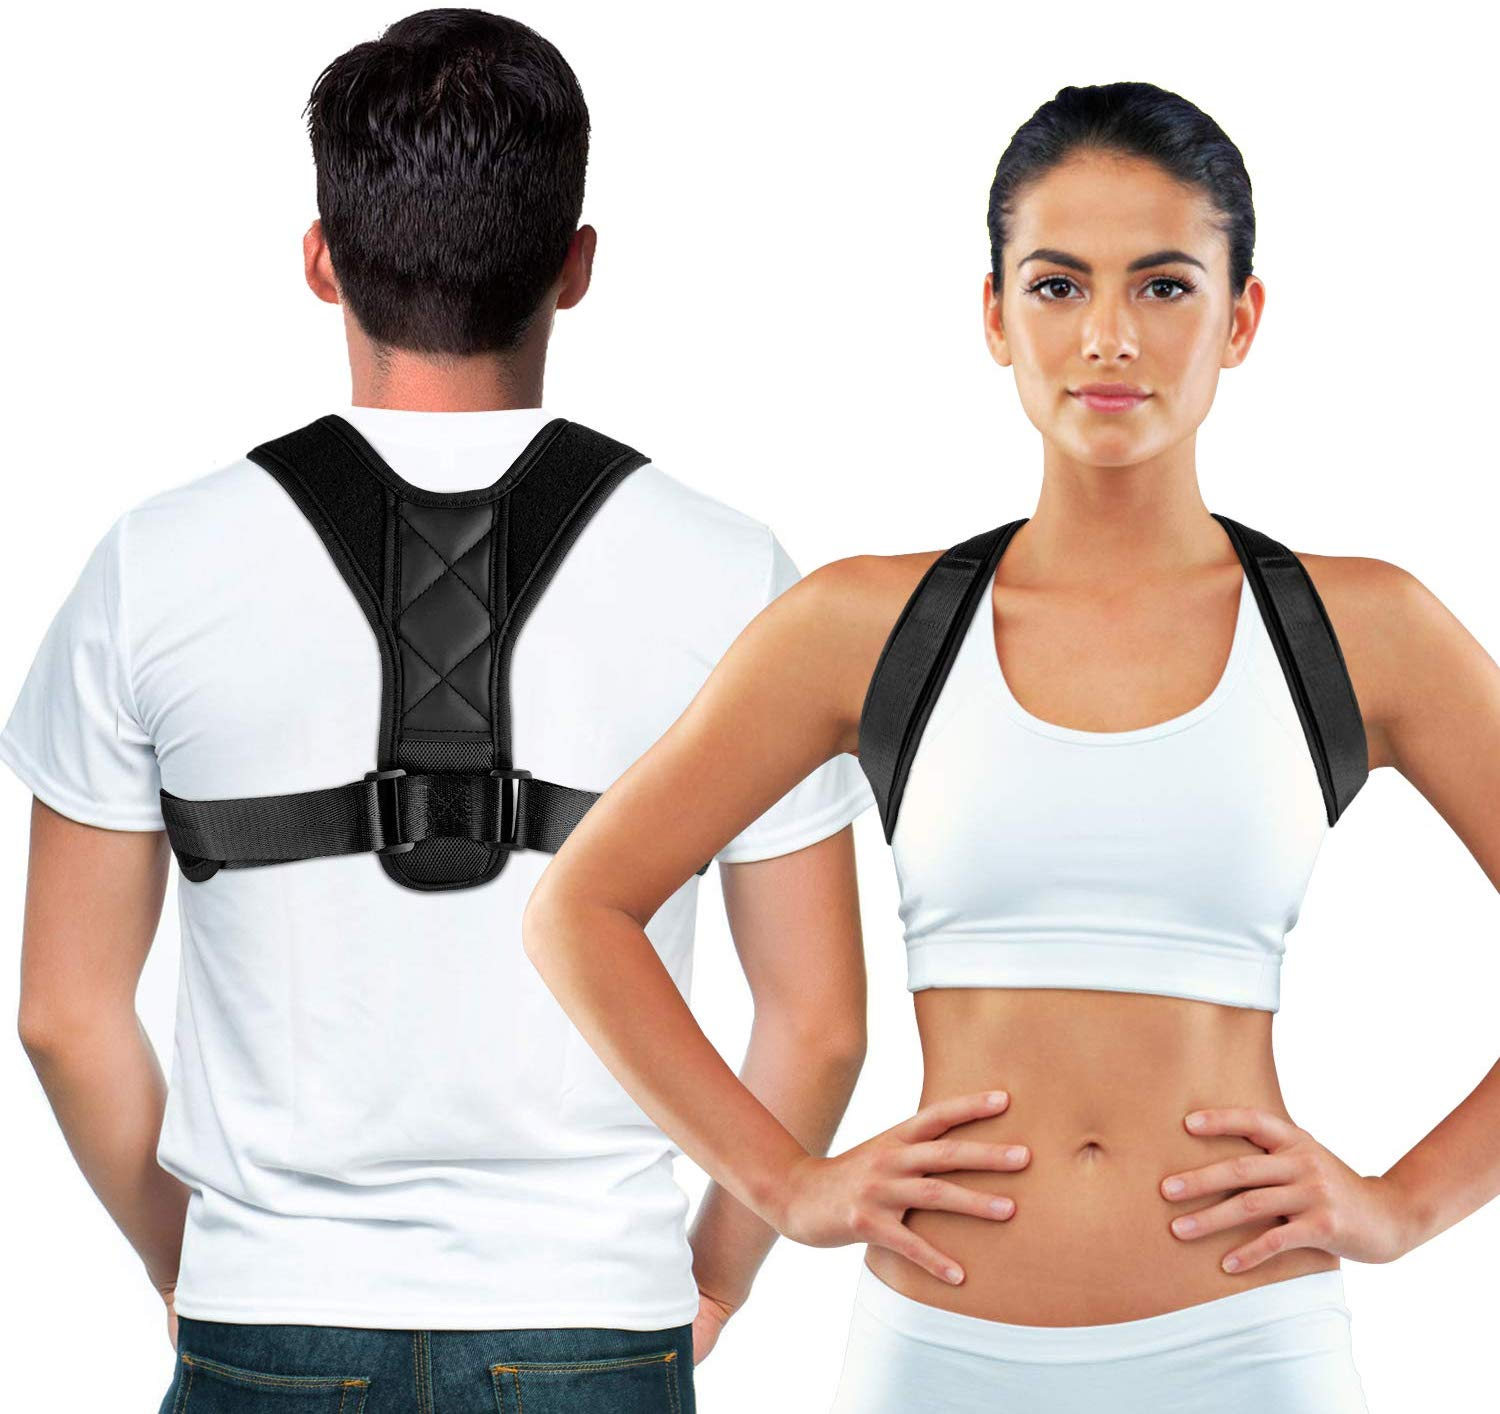 Adjustable Posture Corrector Braces Supports Back Straightener Clavicle Spine Back Shoulder Lumbar Posture Correction